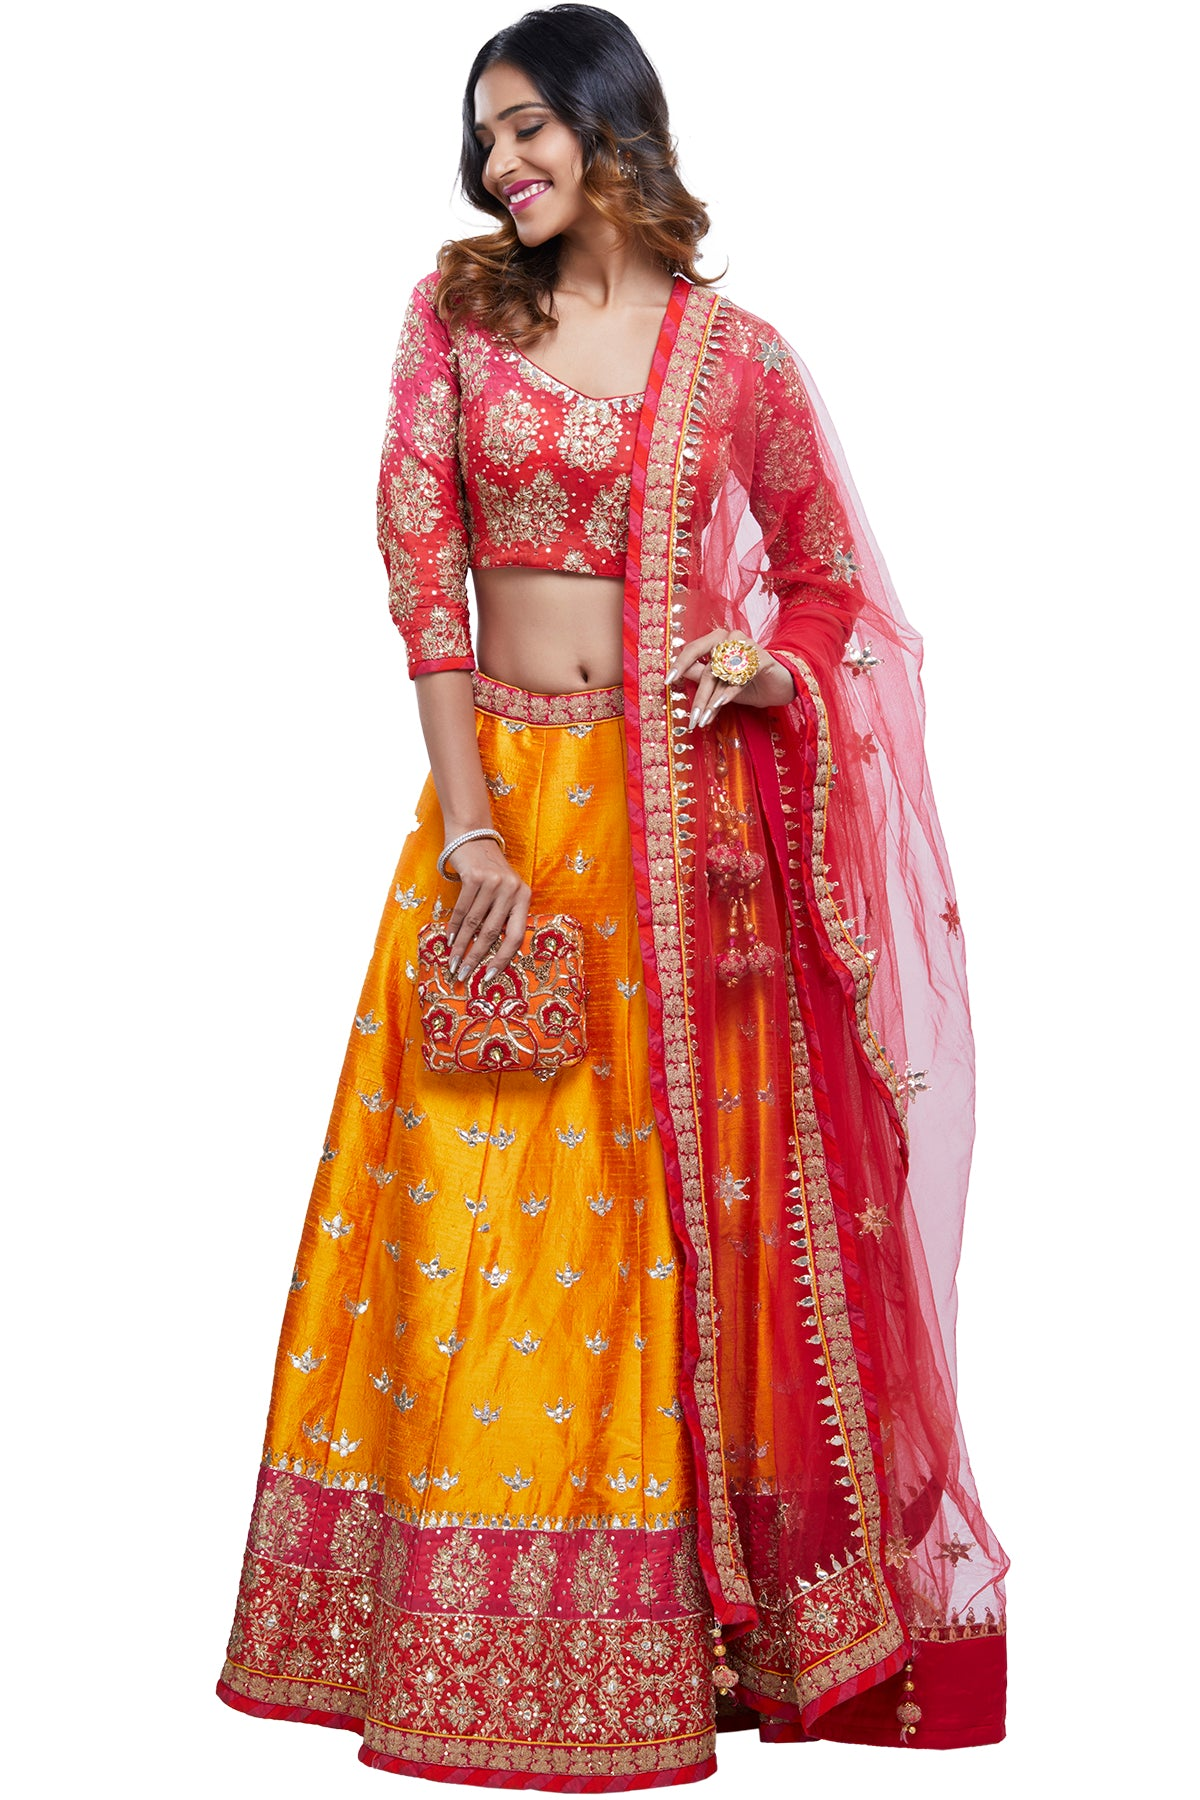 Fall in love all over again with the intricacy, craftsmanship and undeniable elegance that forms this piece. It comes with a shaded coral to hot pink silk blouse & net dupatta with gota embroidery over a rich saffron-hued embroidered lehenga.